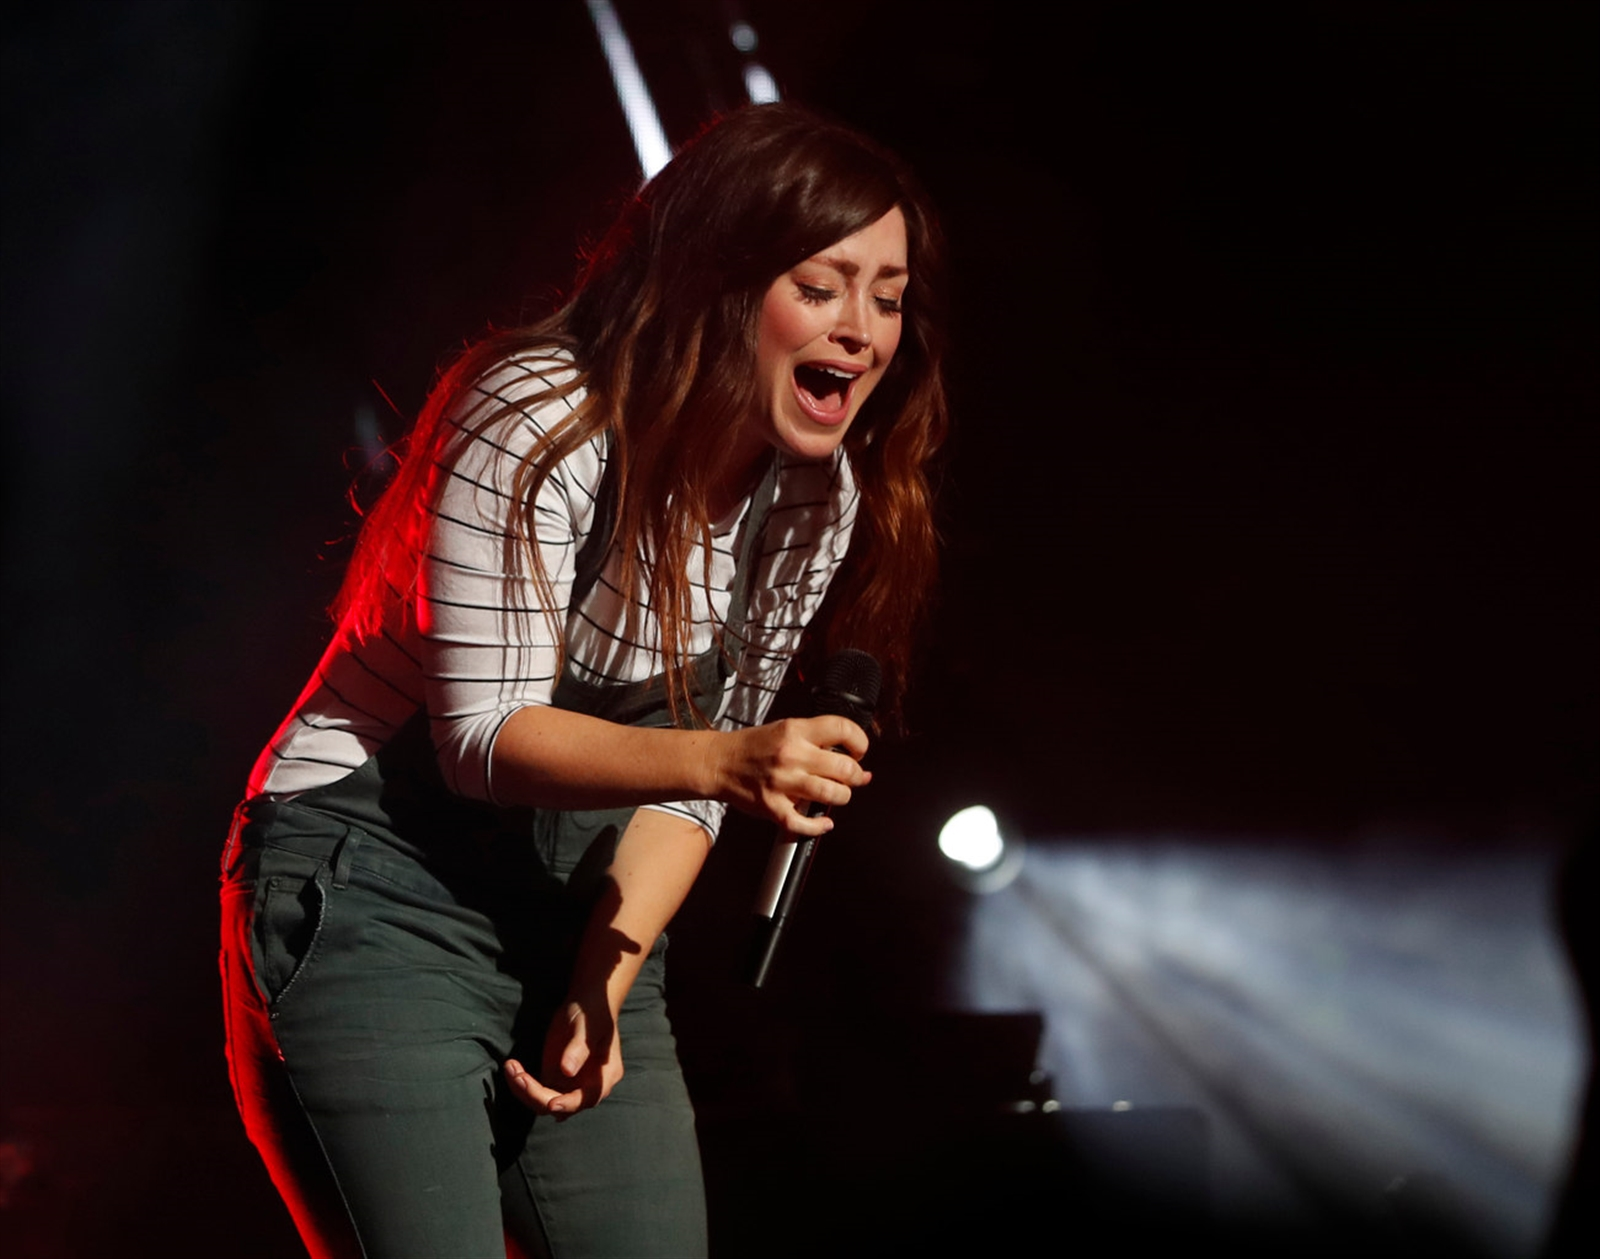 Contemporary Christian worship singer Kari Jobe headlines Thursday night.